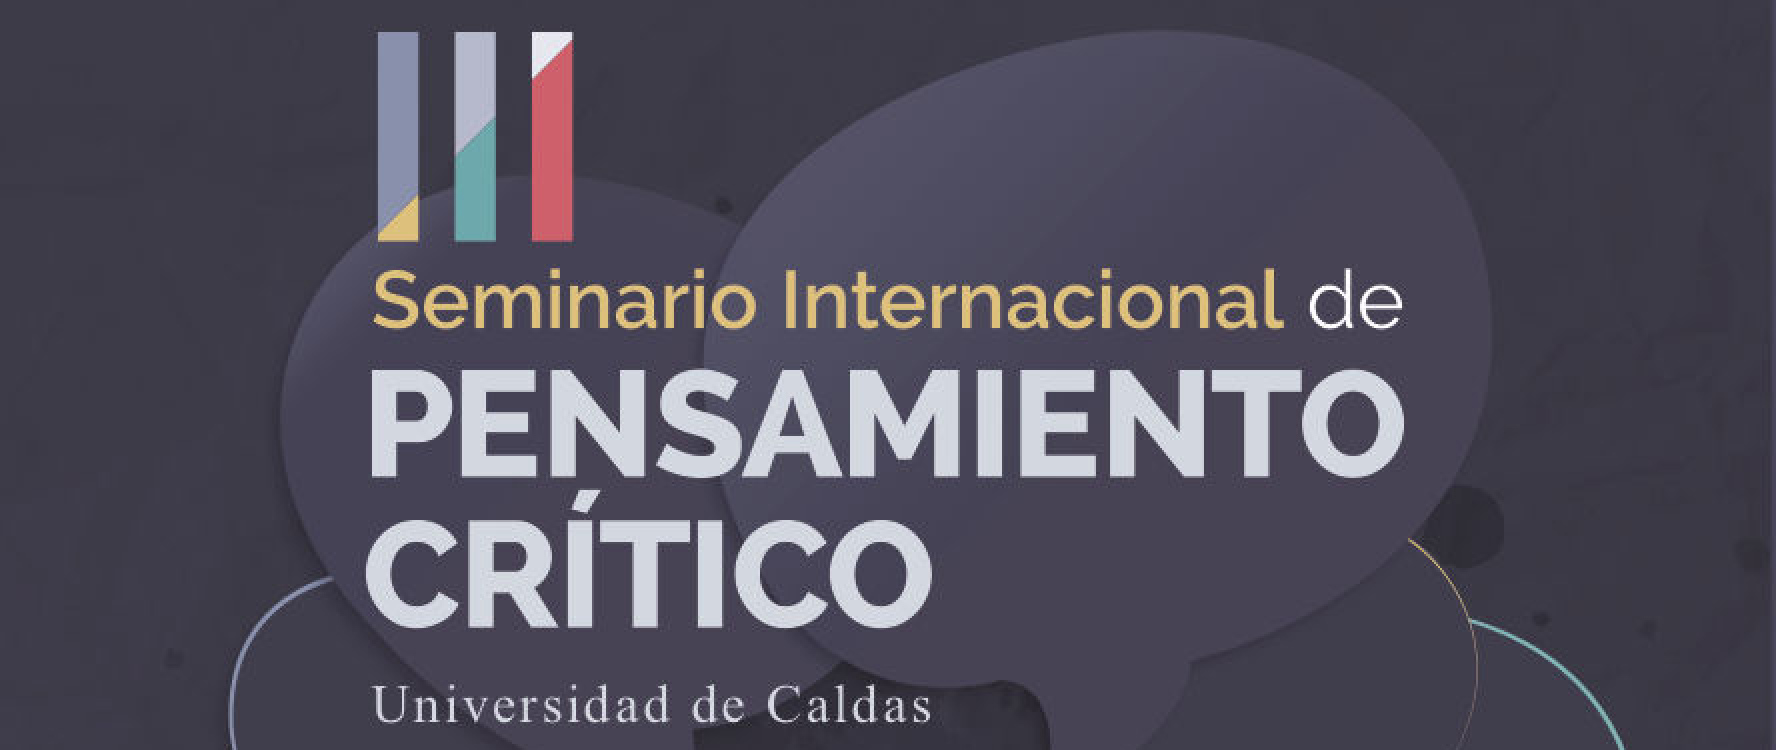 III International Seminar on Critical Thinking